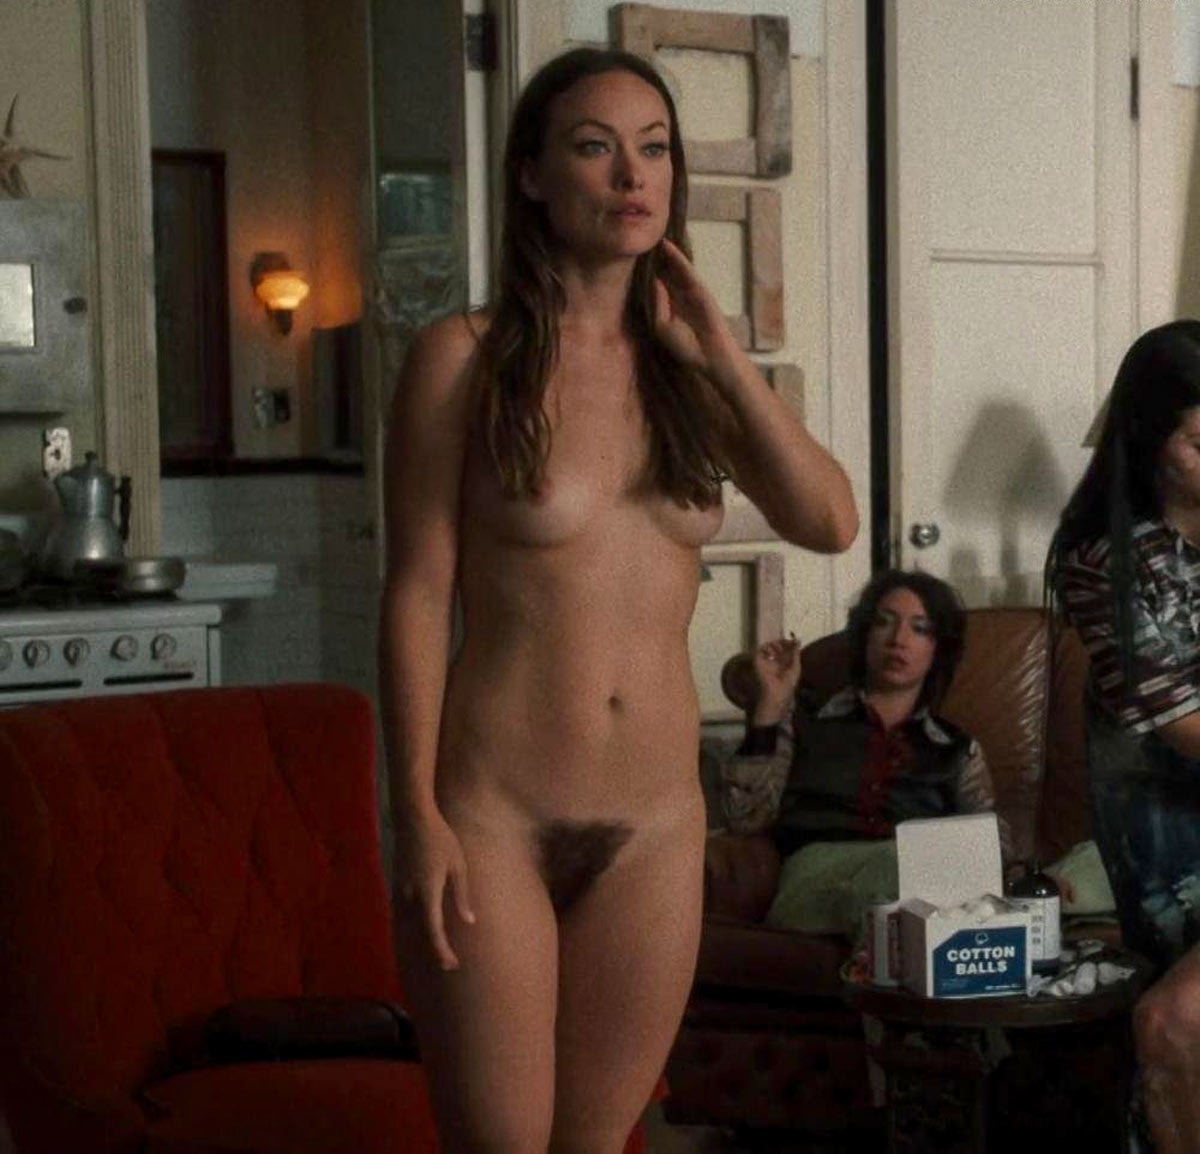 Top 10 nude scenes 2016 | Olivia Wilde naked in the movie Vinyl.